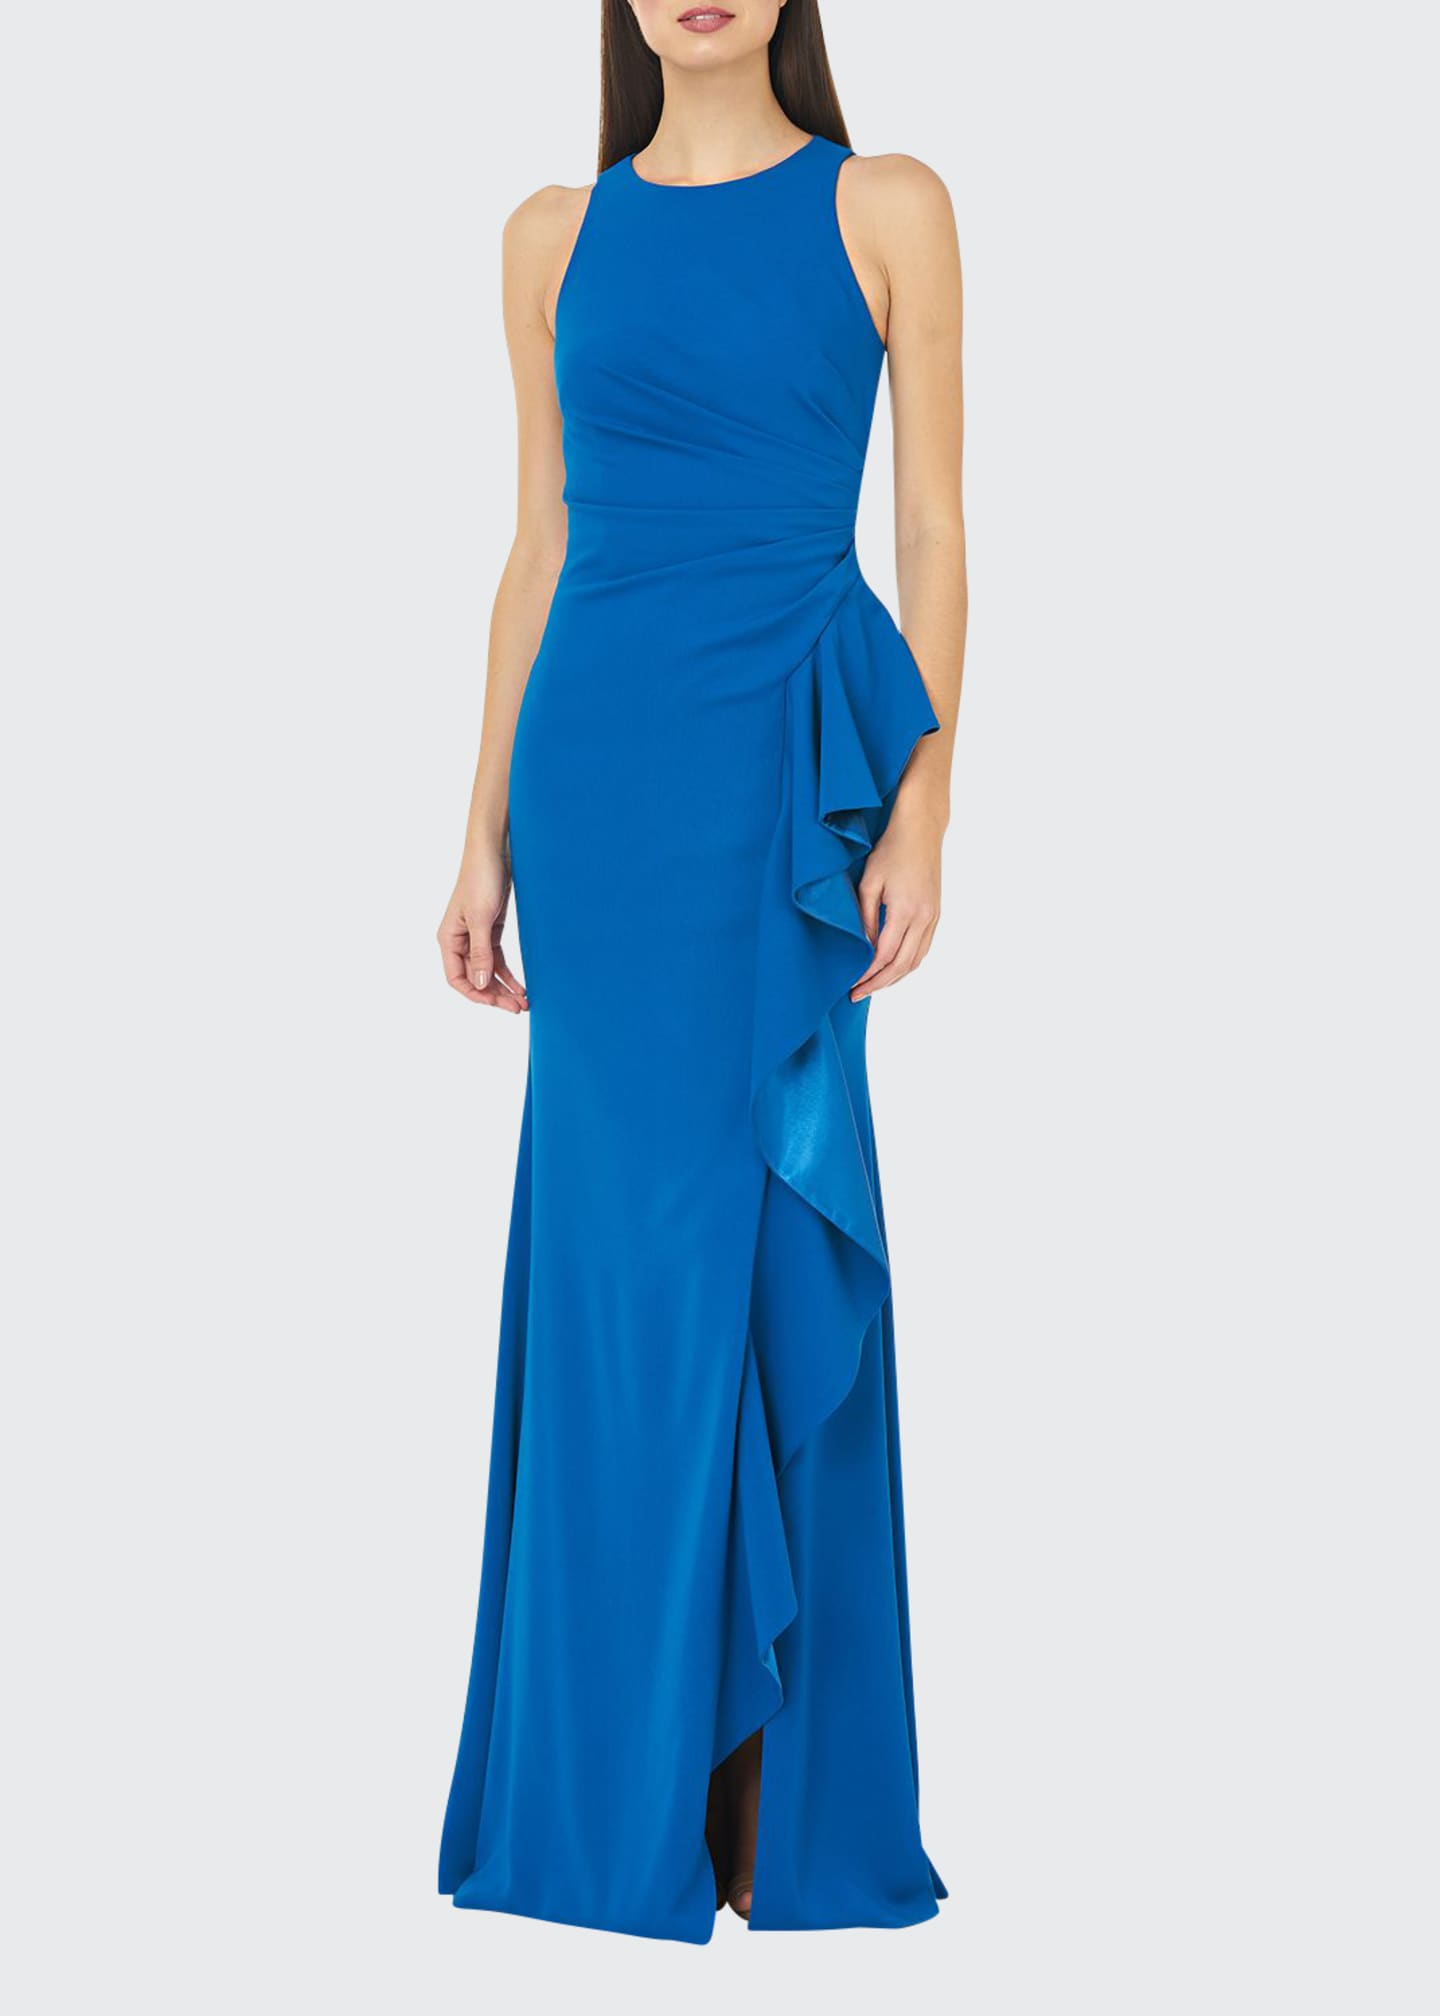 Carmen Marc Valvo Infusion Crepe Halter Gown with